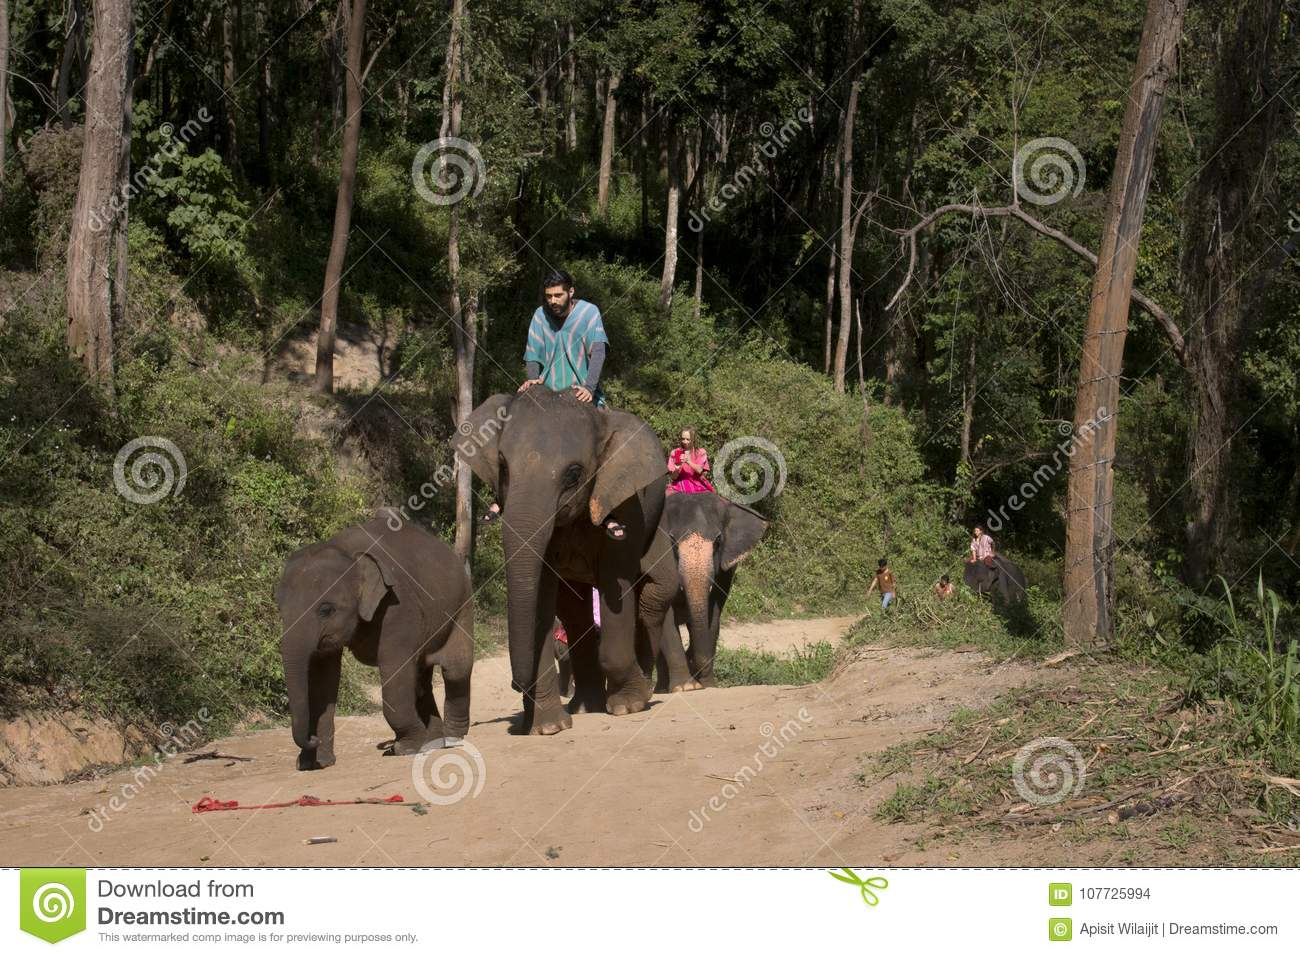 CHIANG MAI, THAILAND - Jan. 9: The Elephants and traveler trekking in the forest at The Samueng Elephant Camp in the Kaew Ta Chan